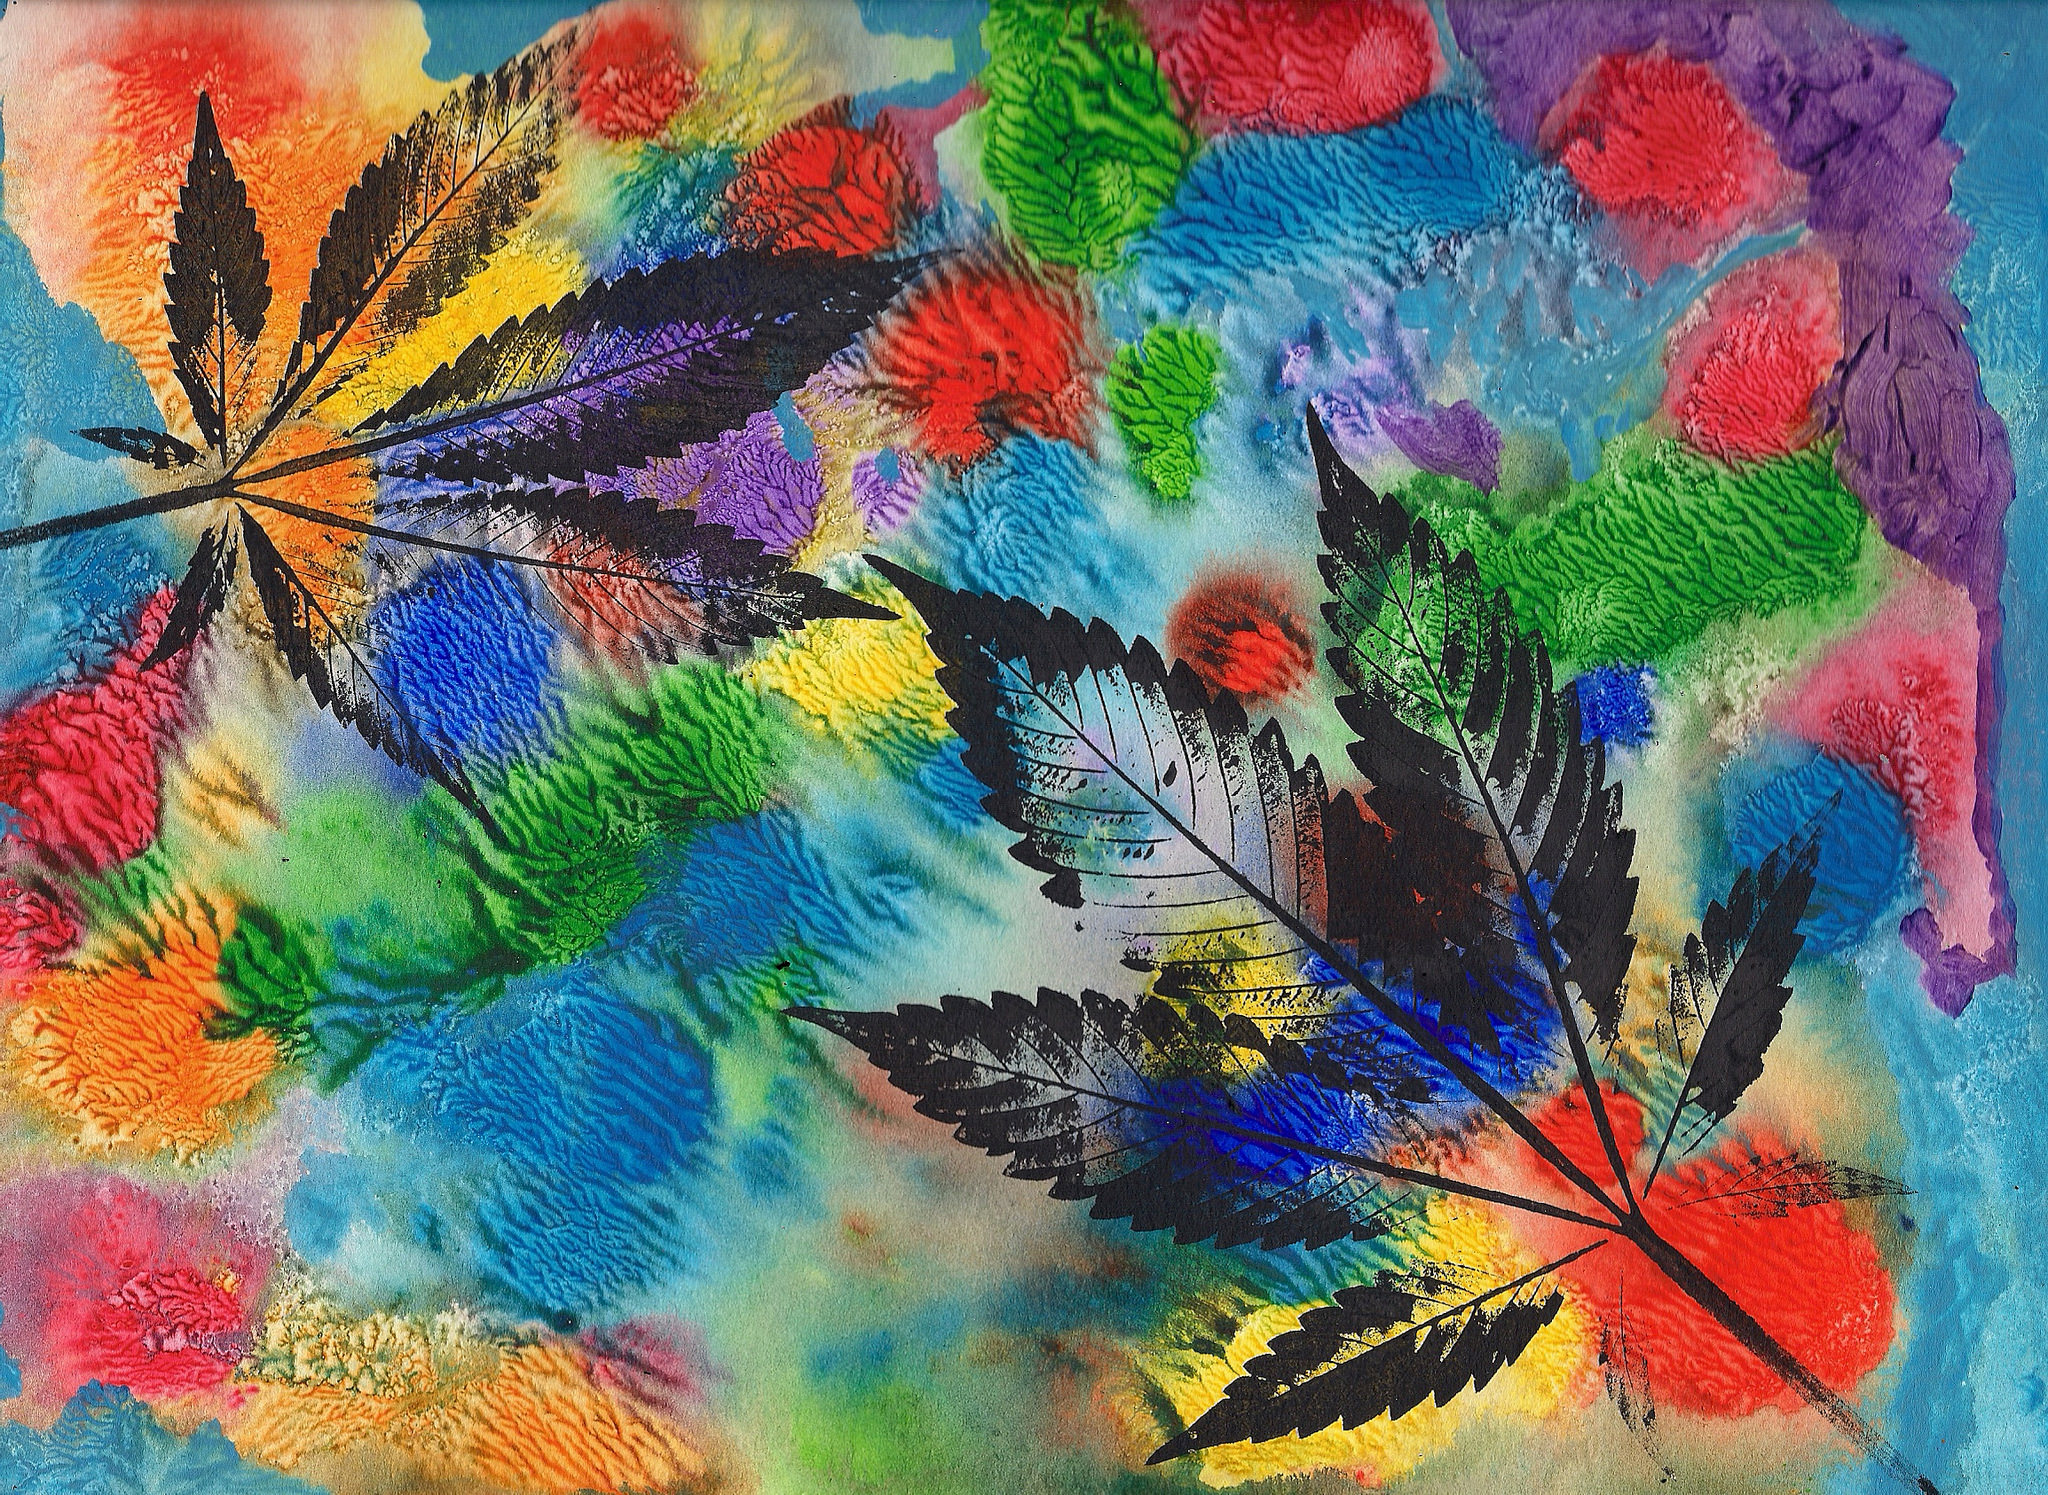 JurrasicBlueberries abstract cannabis art titled Cookies 2017